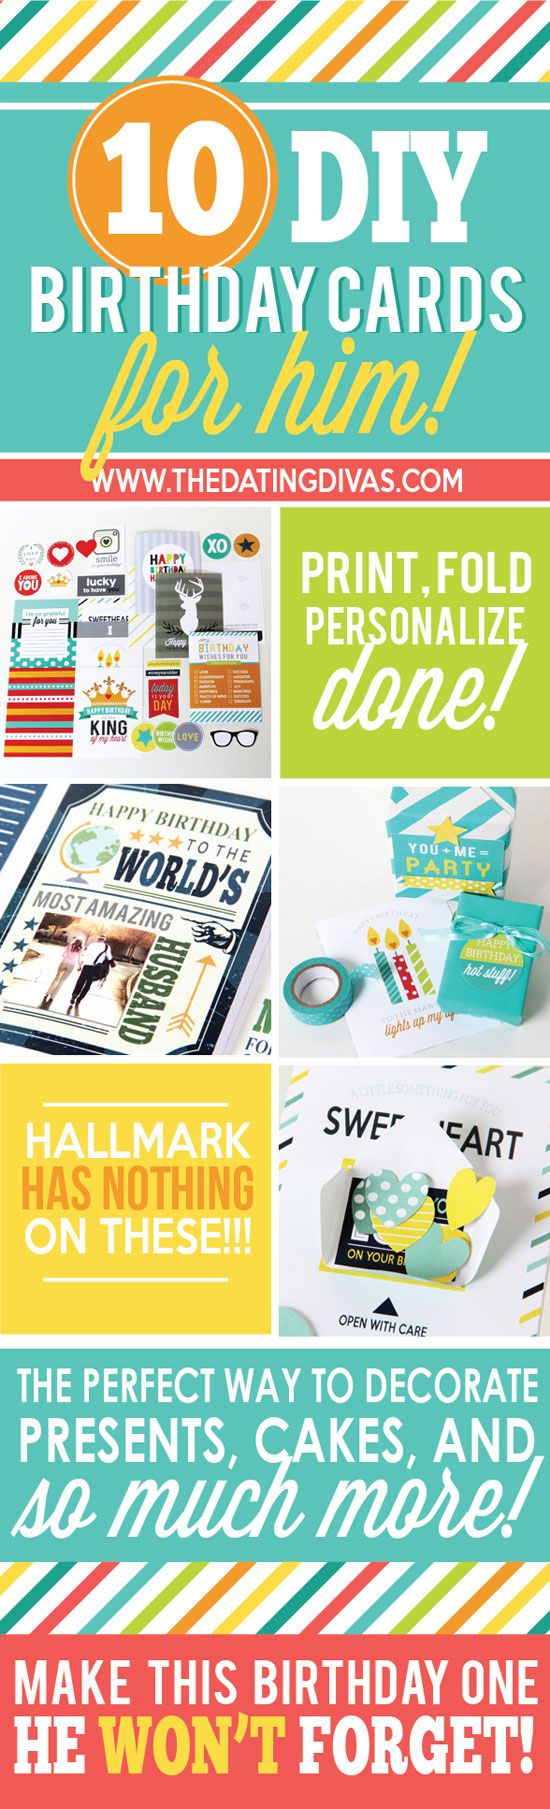 Every style you could ever need of printable birthday cards for your husband!